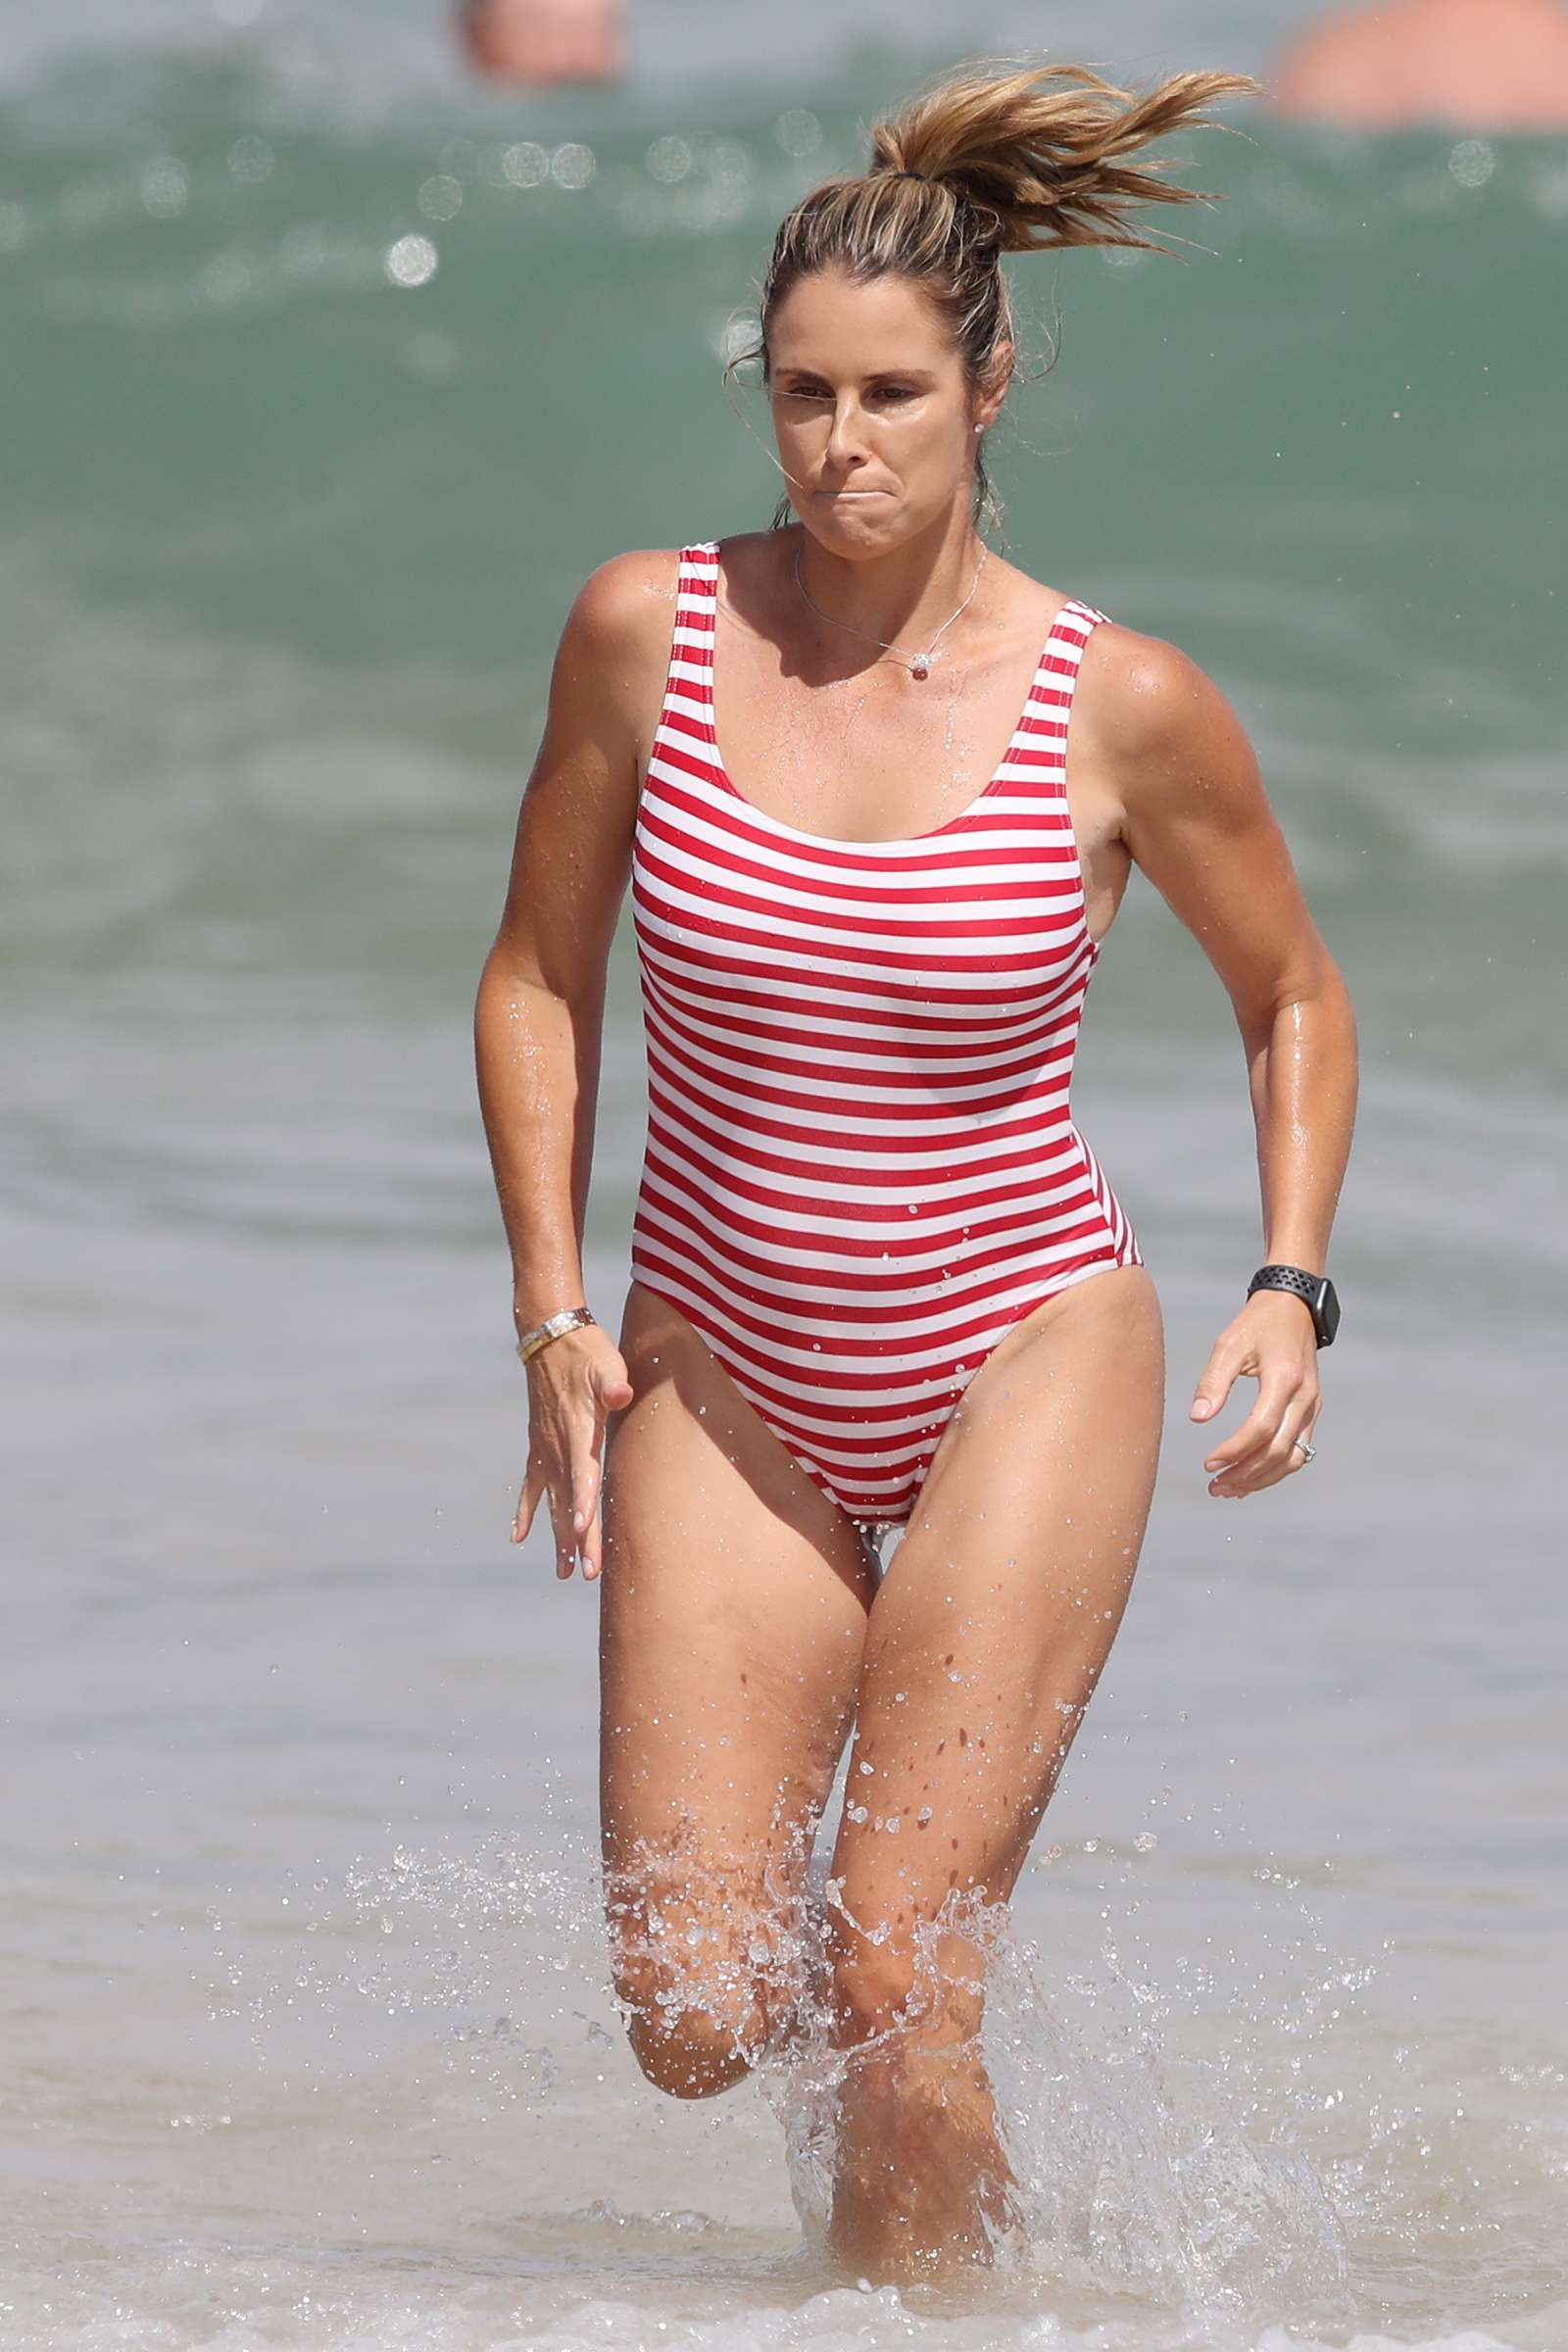 Candice Warner 2019 : Candice Warner in Red and White Swimsuit 2019 -10